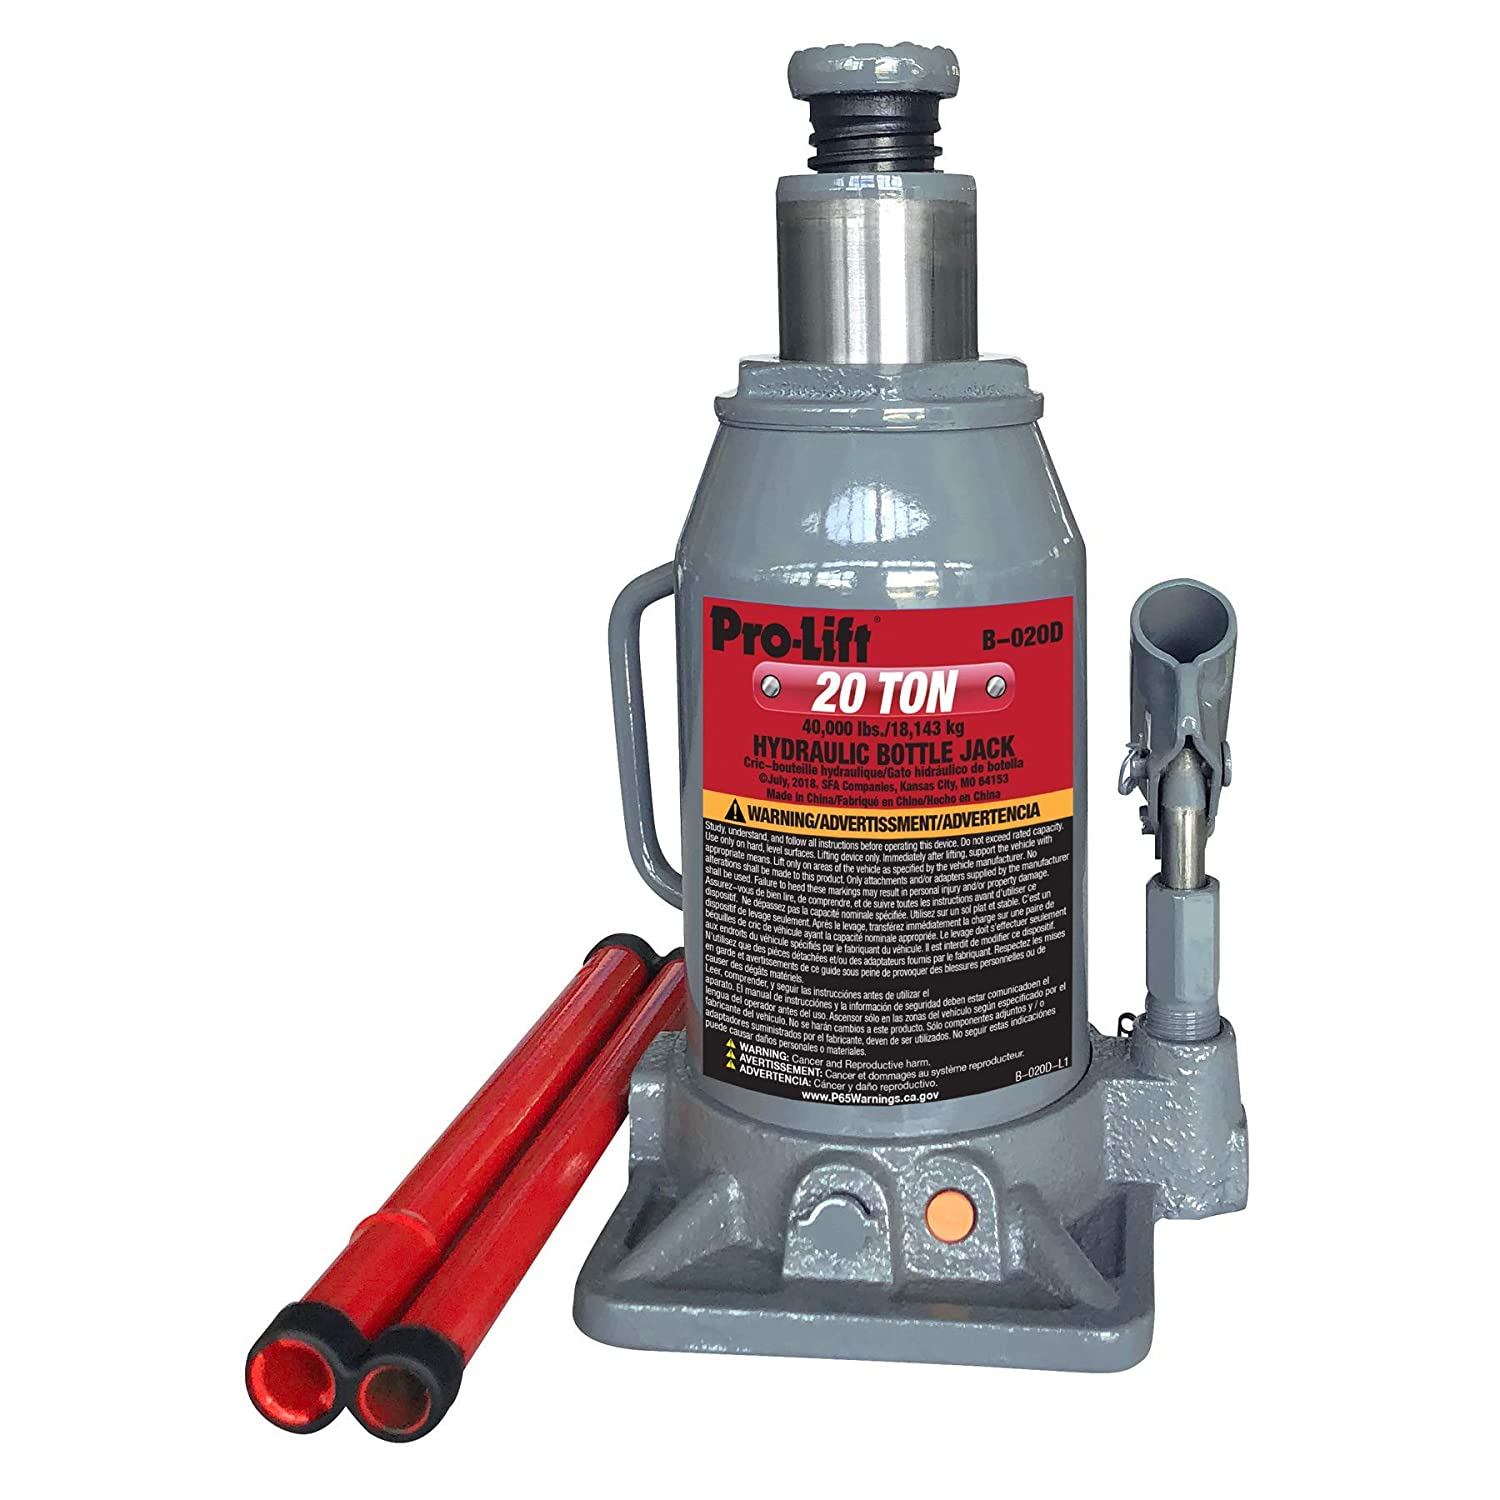 Pro-Lift B-006D Grey Hydraulic Bottle Jack - 6 Ton Capacity (Renewed)